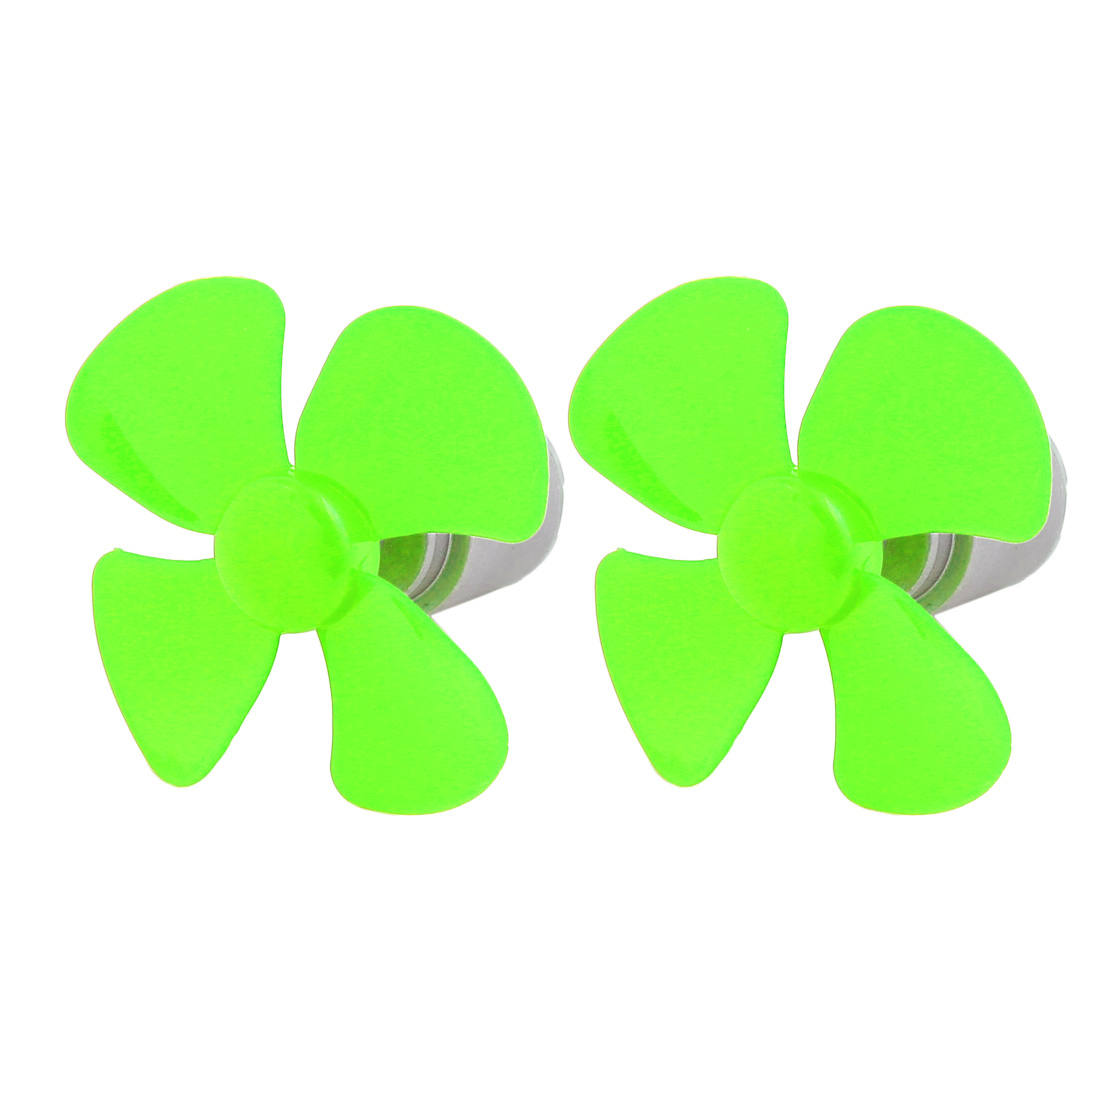 2pcs DC 3V 0.13A 9000RPM Green Strong Force Motor 4 Vanes 56mm Dia Propeller for RC Aircraft